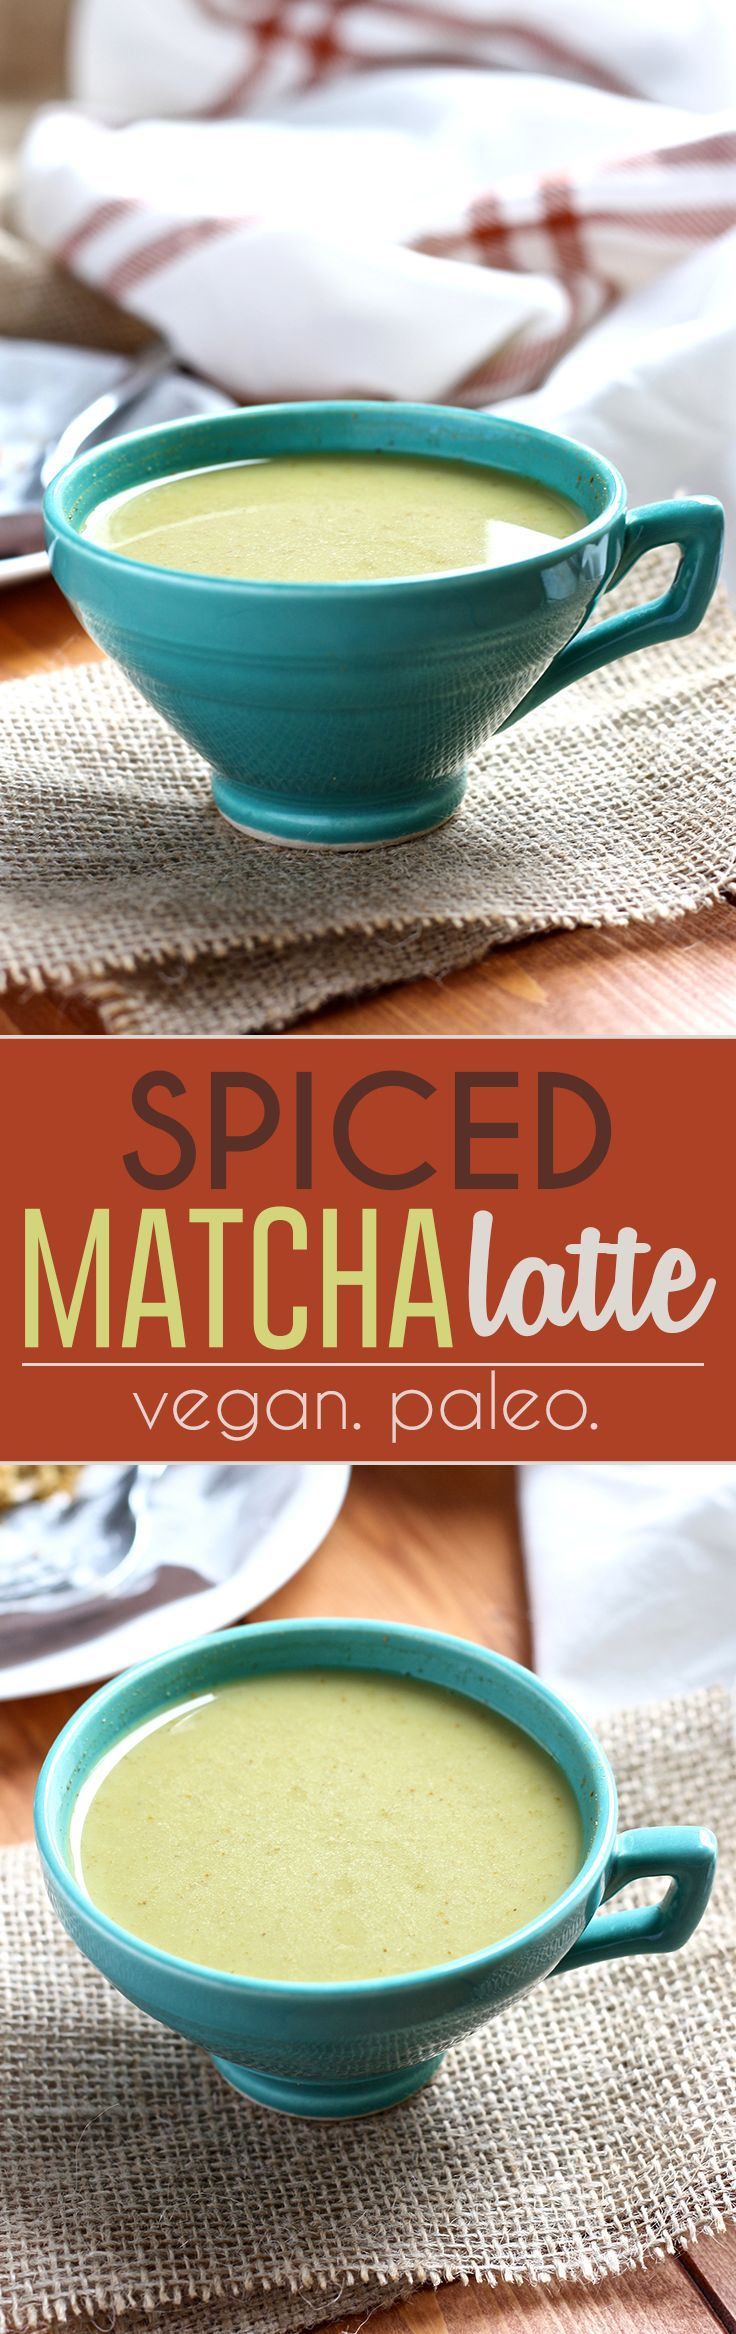 This dairy-free Spiced Matcha Latte is so perfect. The cinnamon, turmeric and ginger take this healthy green drink to a whole new level!